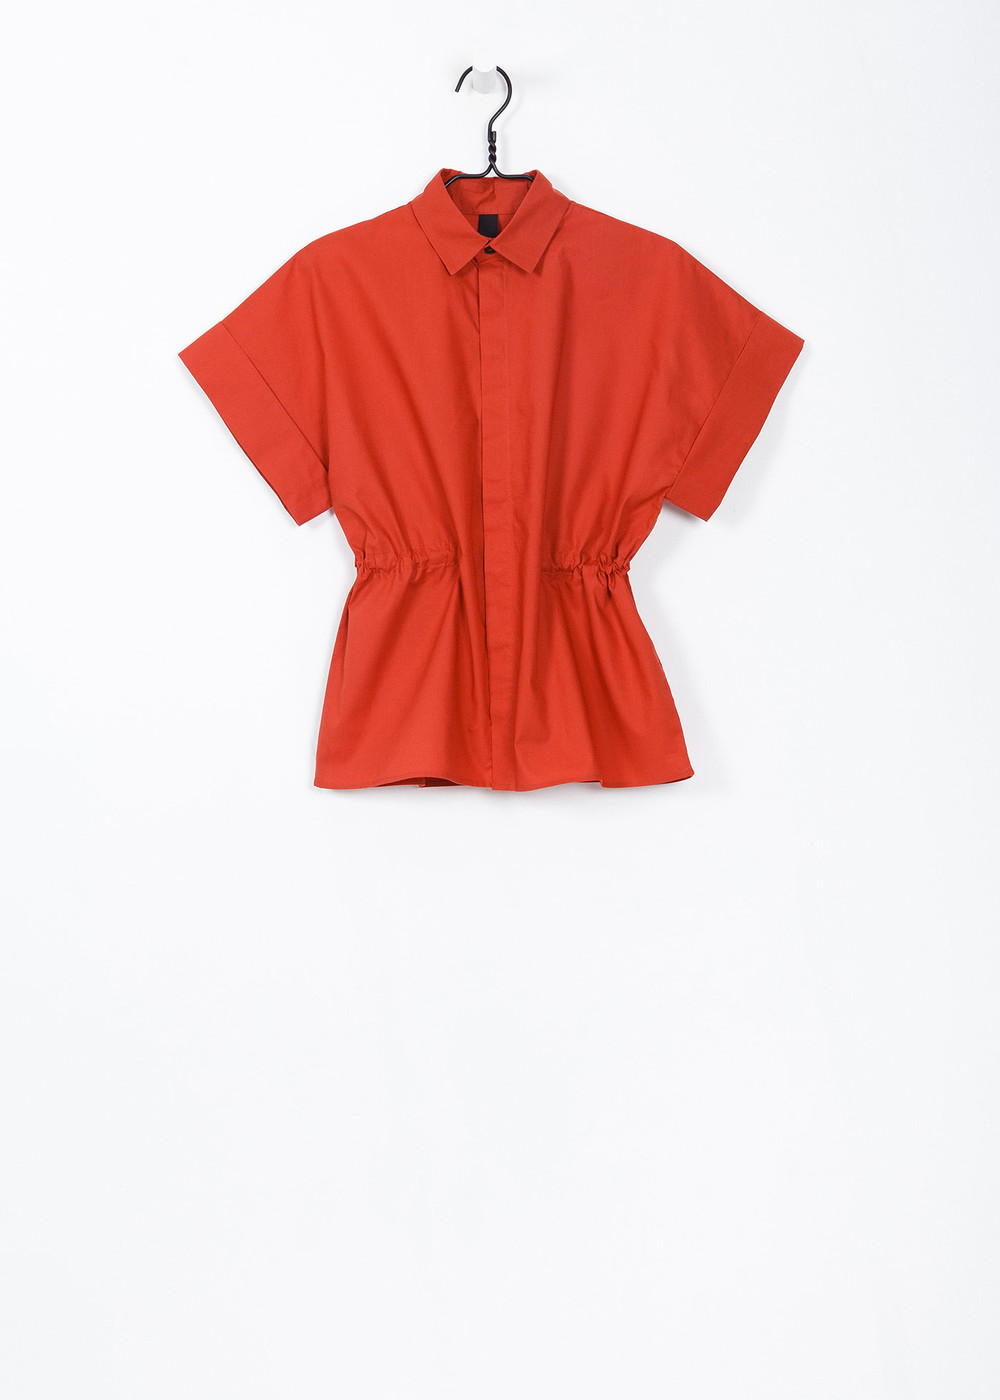 Form Shirt red.jpg